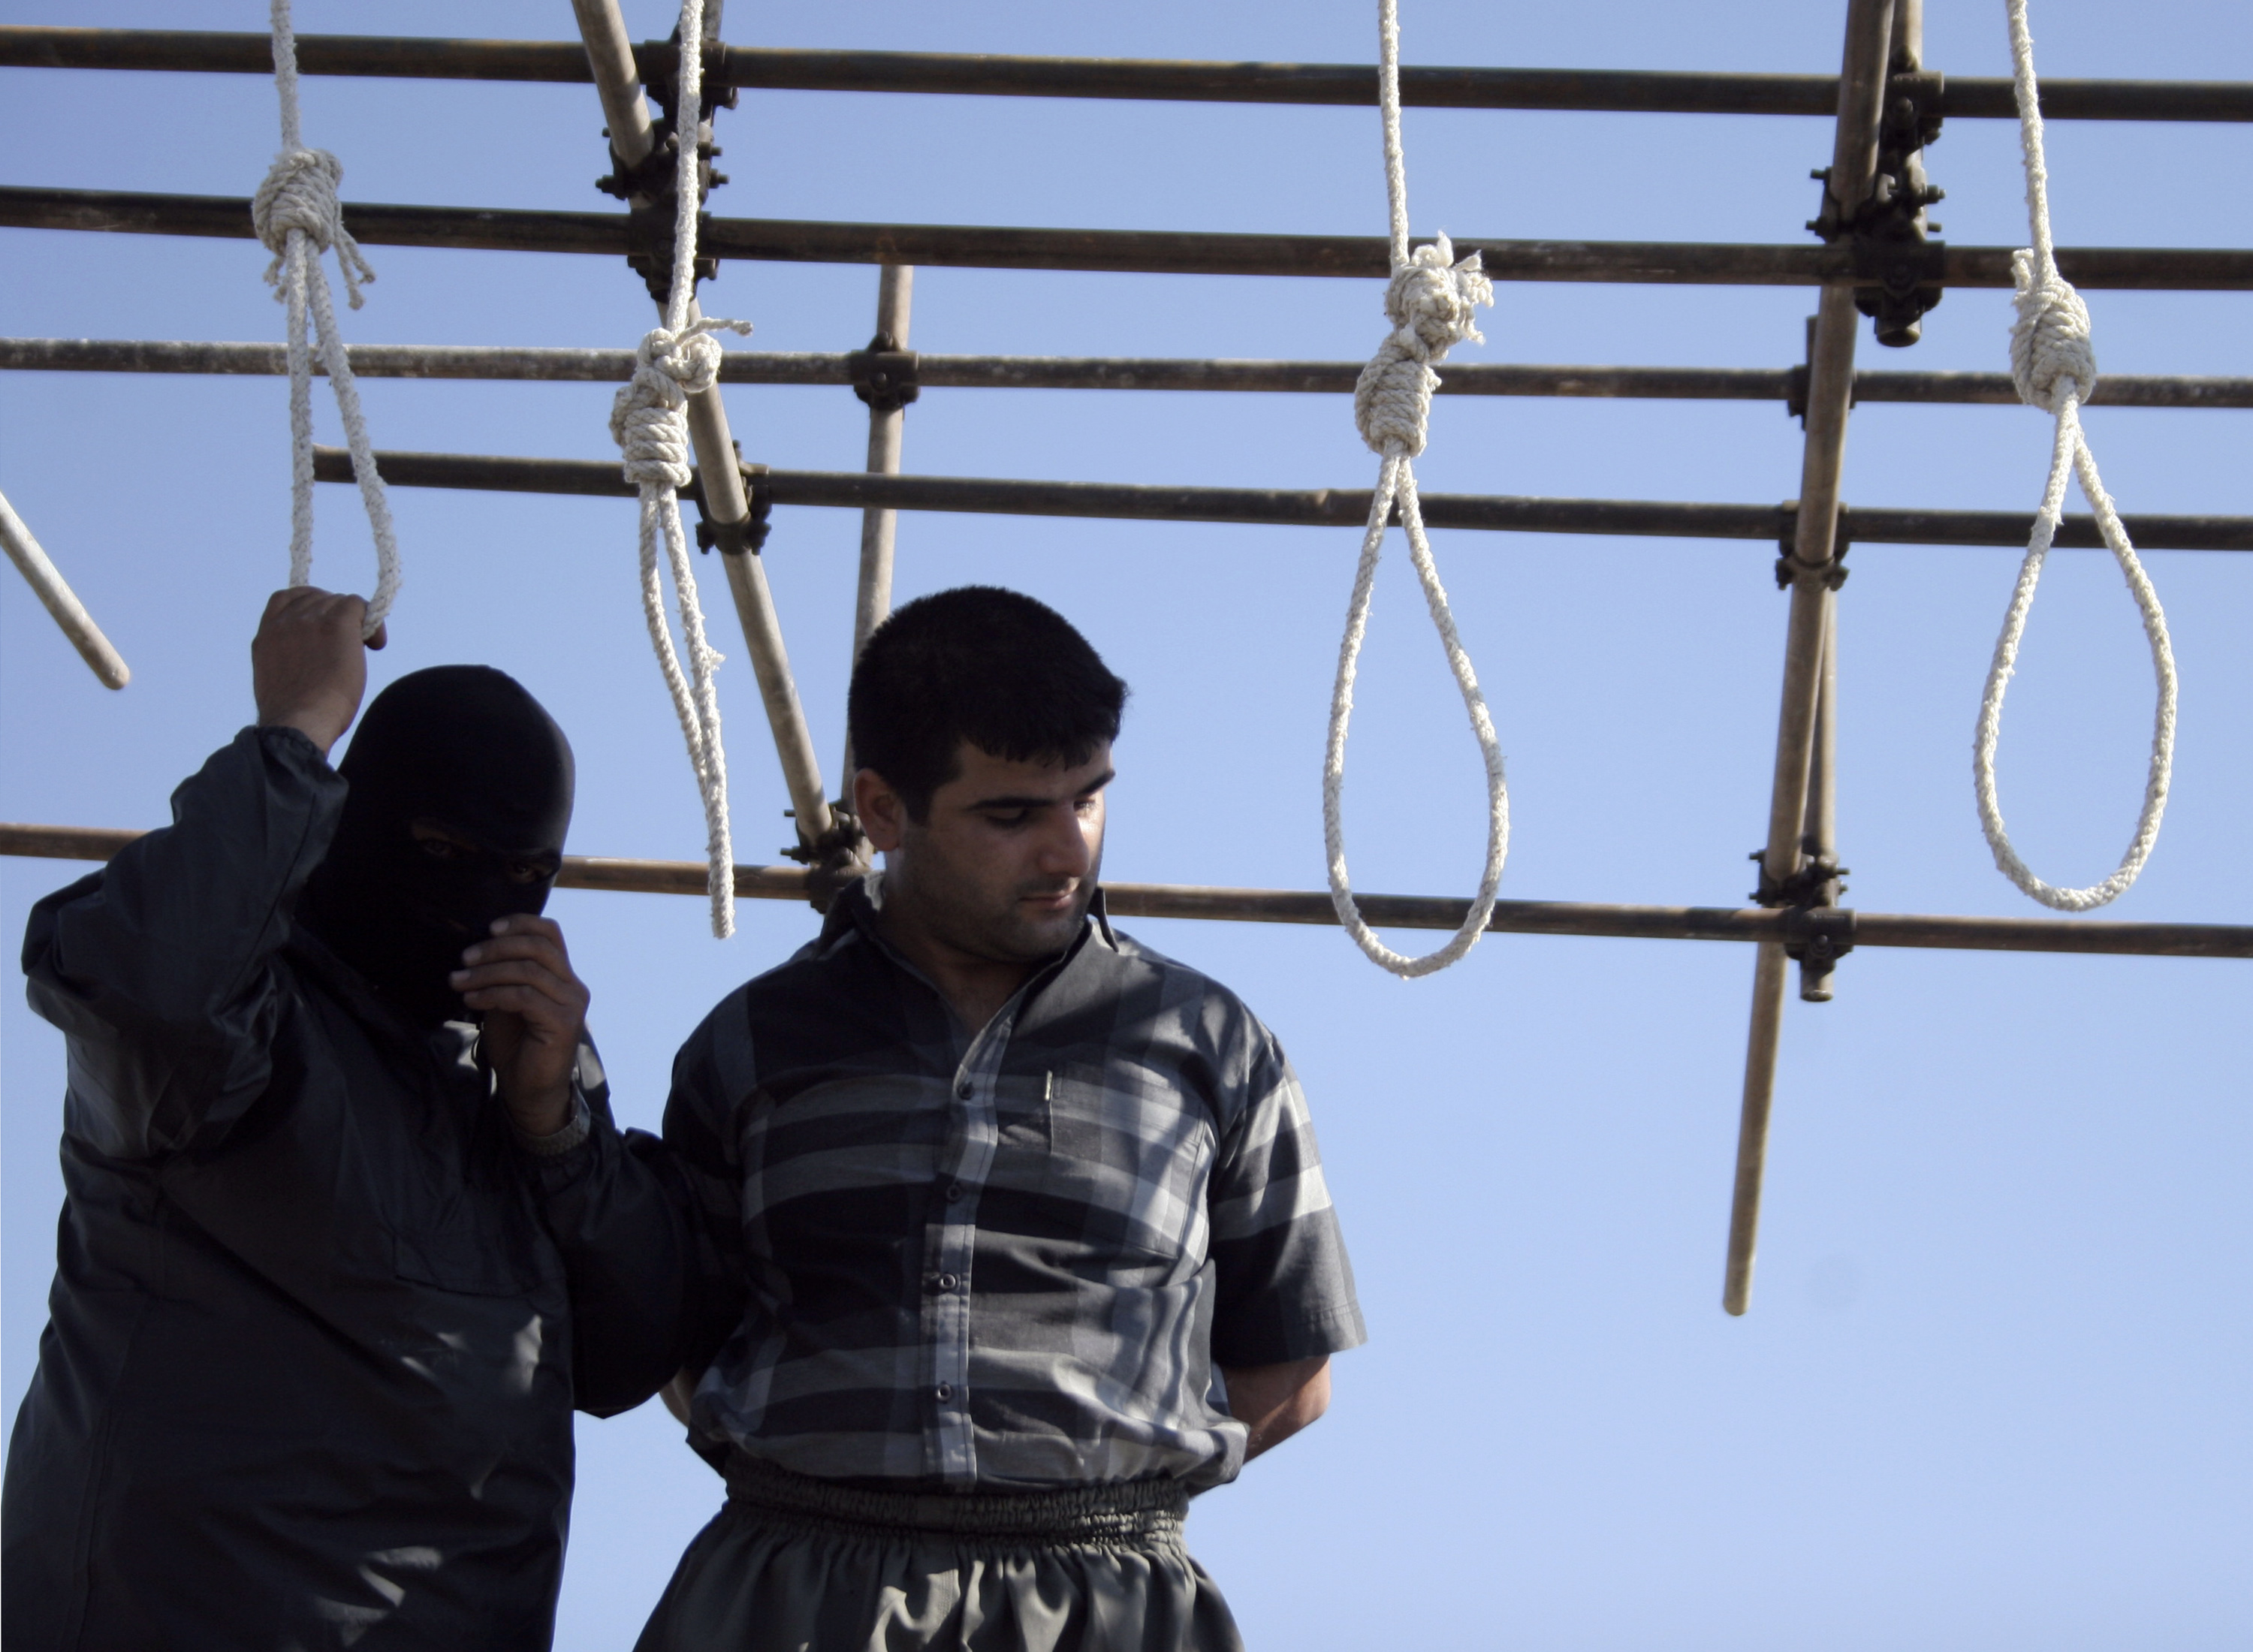 A policeman prepares a man, convicted of various charges, for his hanging in Mashhad, 924 km (574 miles) east of Tehran August 1, 2007. REUTERS/Stringer (IRAN) - RTR1SFLH